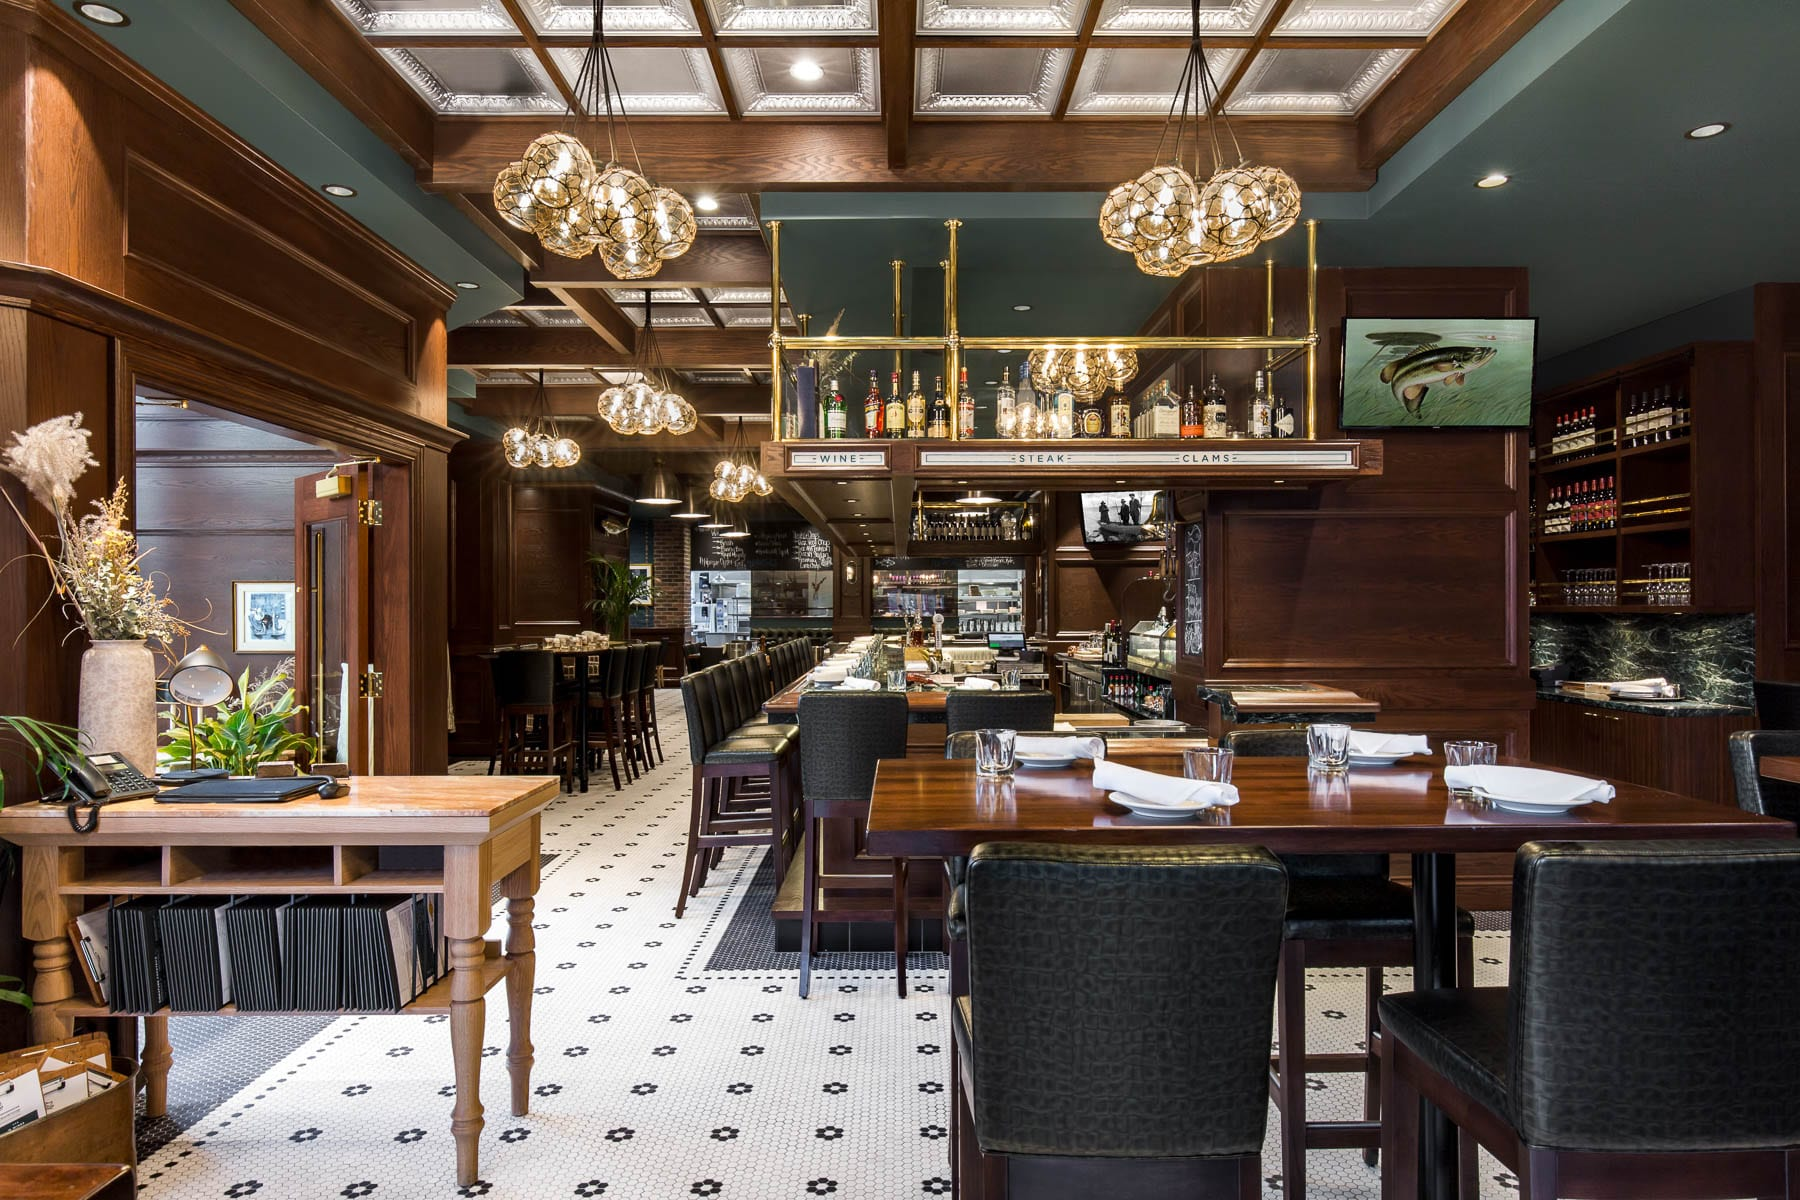 Interior finishes included brick veneer cladding, an elaborate ceiling grid with wood beams and ornate mouldings, recessed wood wall paneling and mosaic floor tiles accented by polished brass and sparkling pendant lighting.